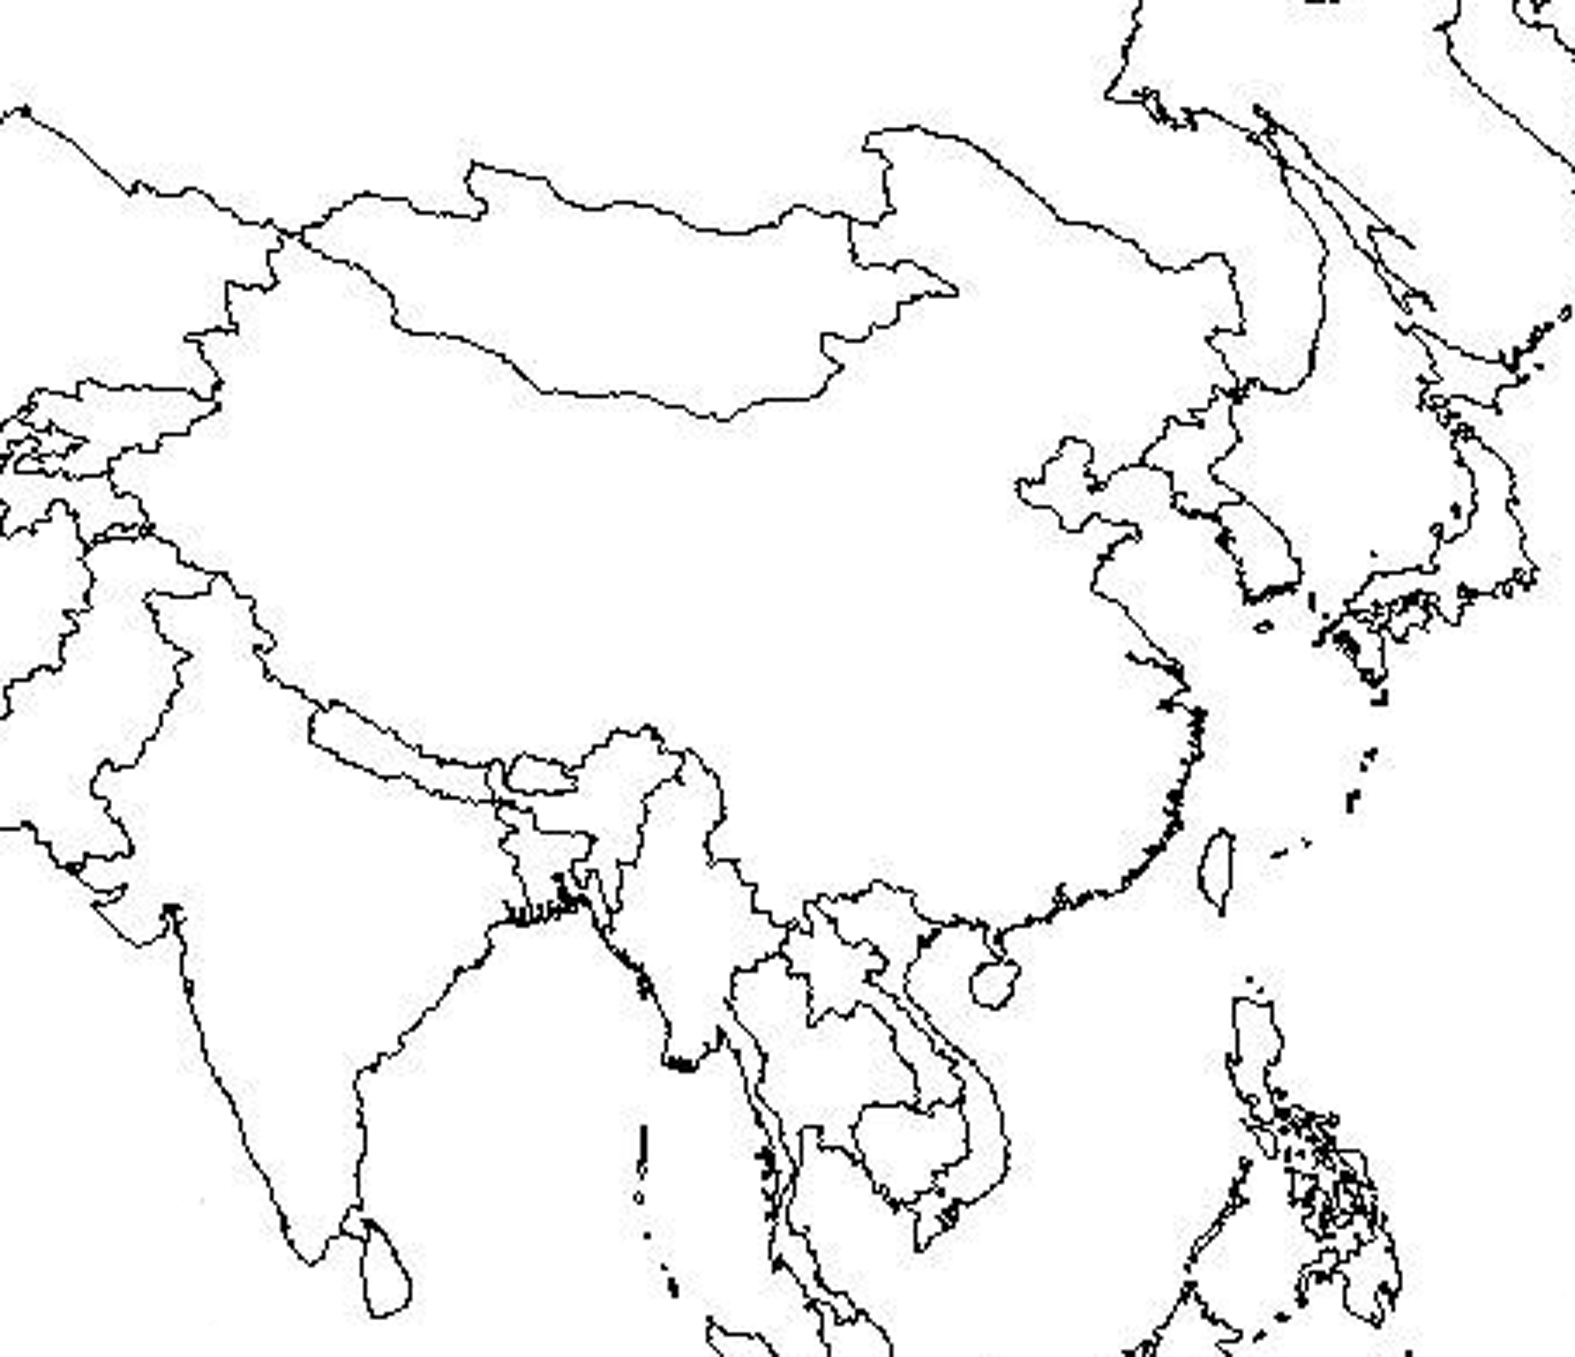 12 Blank World Map Shape Photoshop Images - Blank East Asia ... on blank columbia map, blank east mediterranean map, blank map mediterranean sea, east indies on world map, blank map 8 x 10, blank east asia, blank east hemisphere map, blank map of eurasia, blank map of middle east,